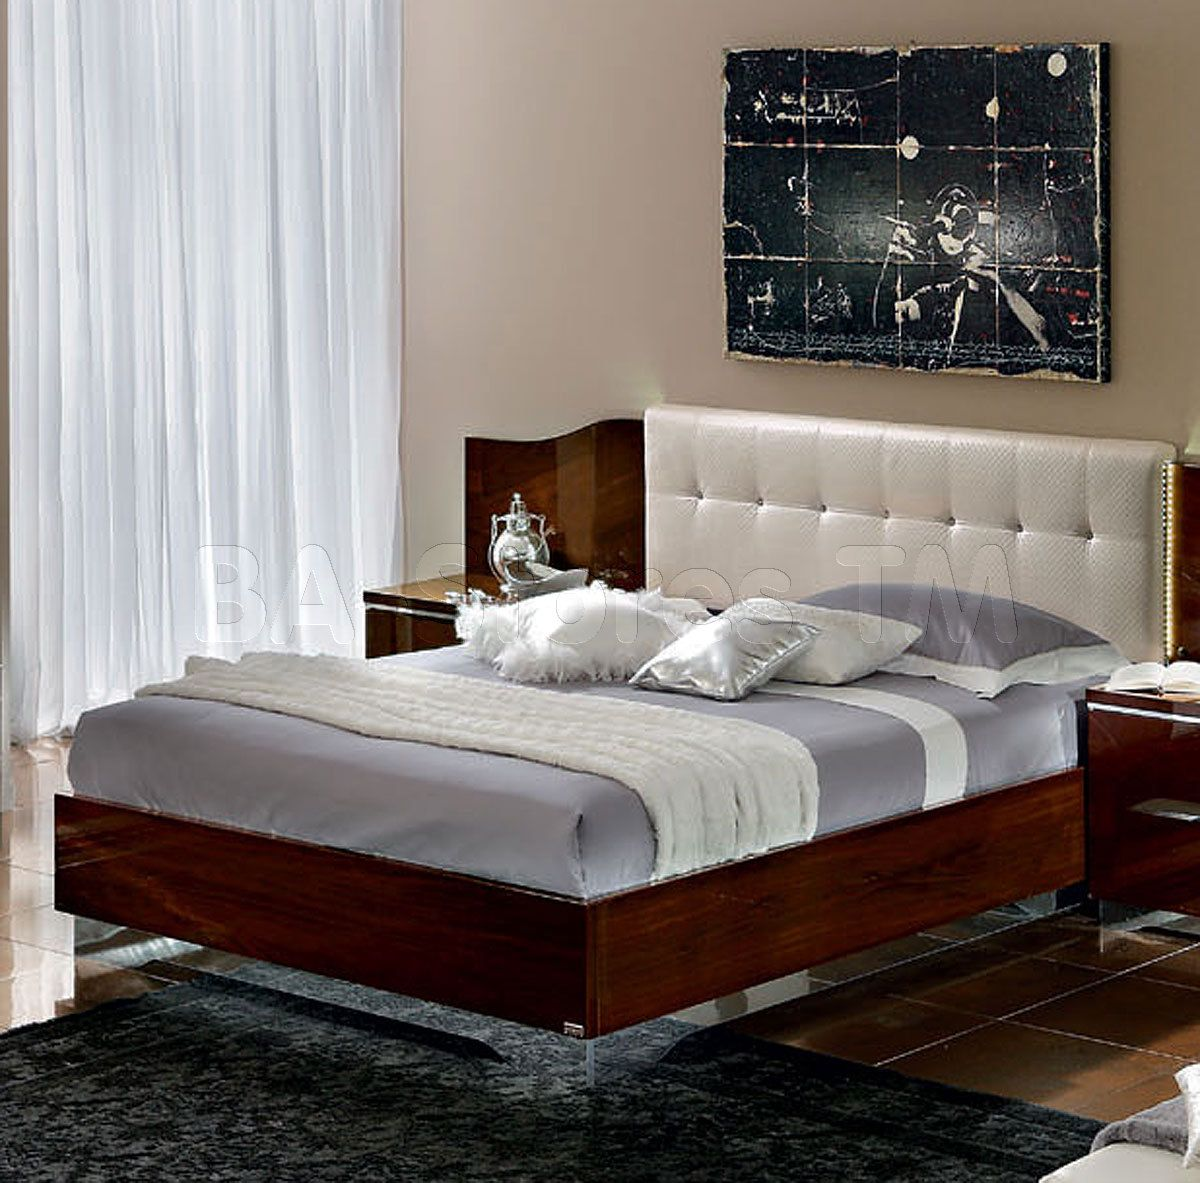 matrix maxi quadri bed in lights by esf beds by esf pinterest